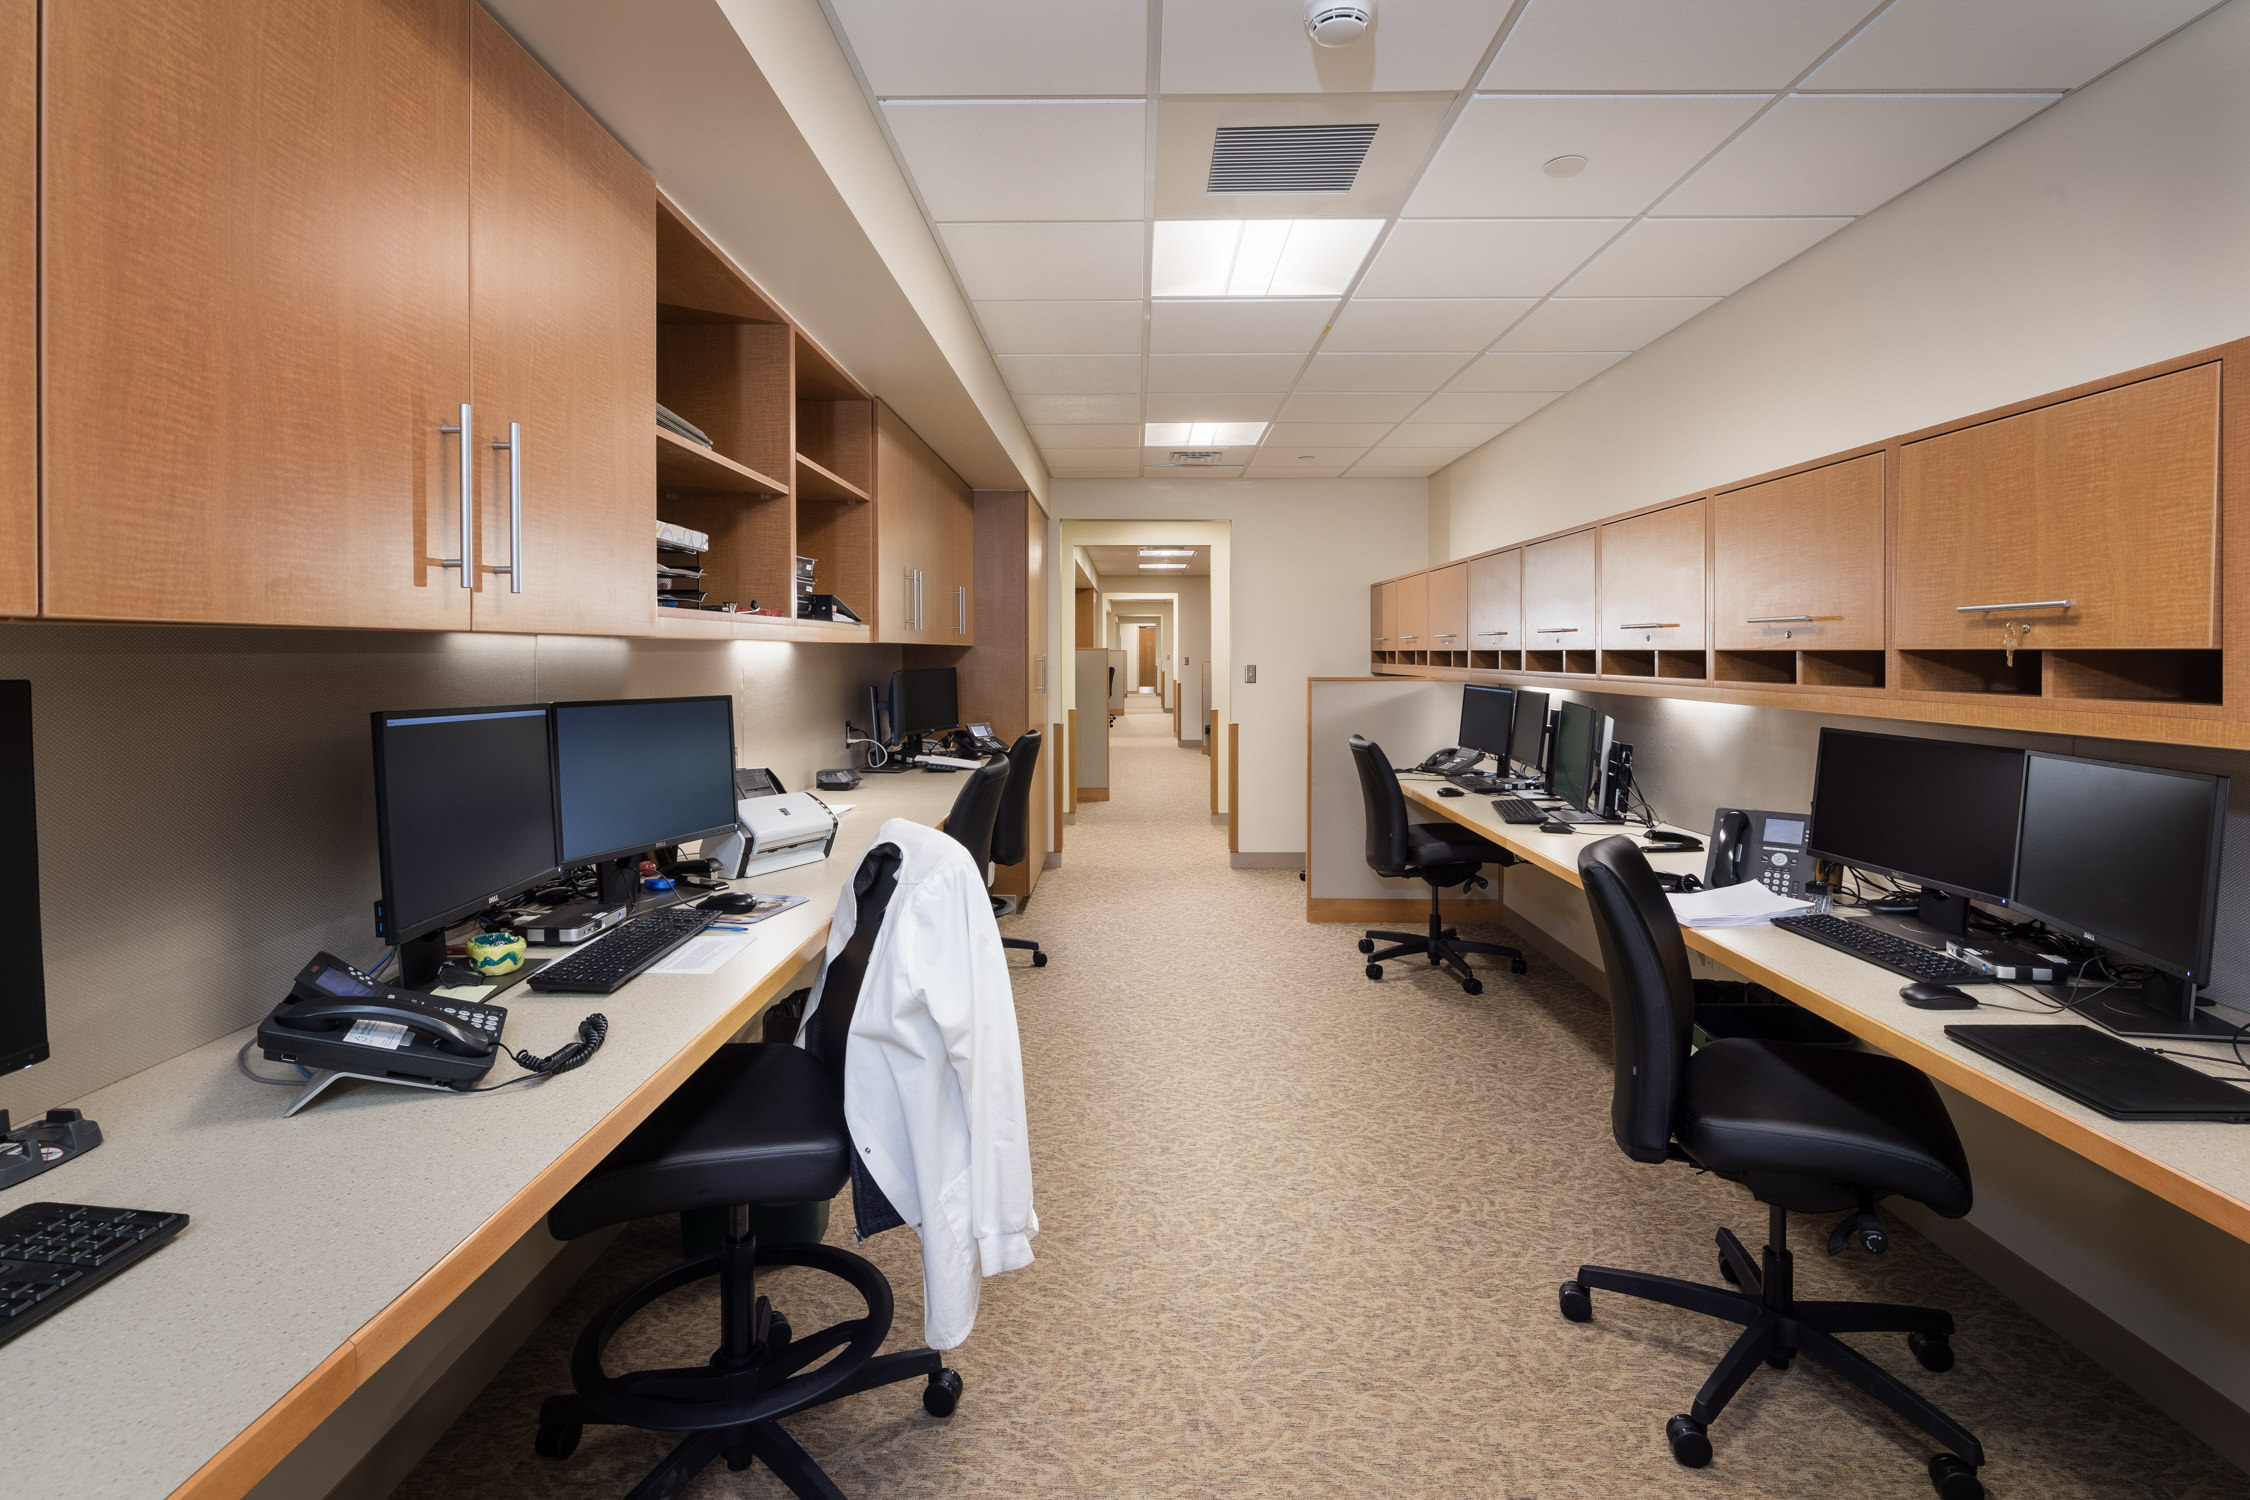 View of the provider workspace in Northwestern Medical Center's Clinics building in St. Albans by Vermont photographer Stina Booth